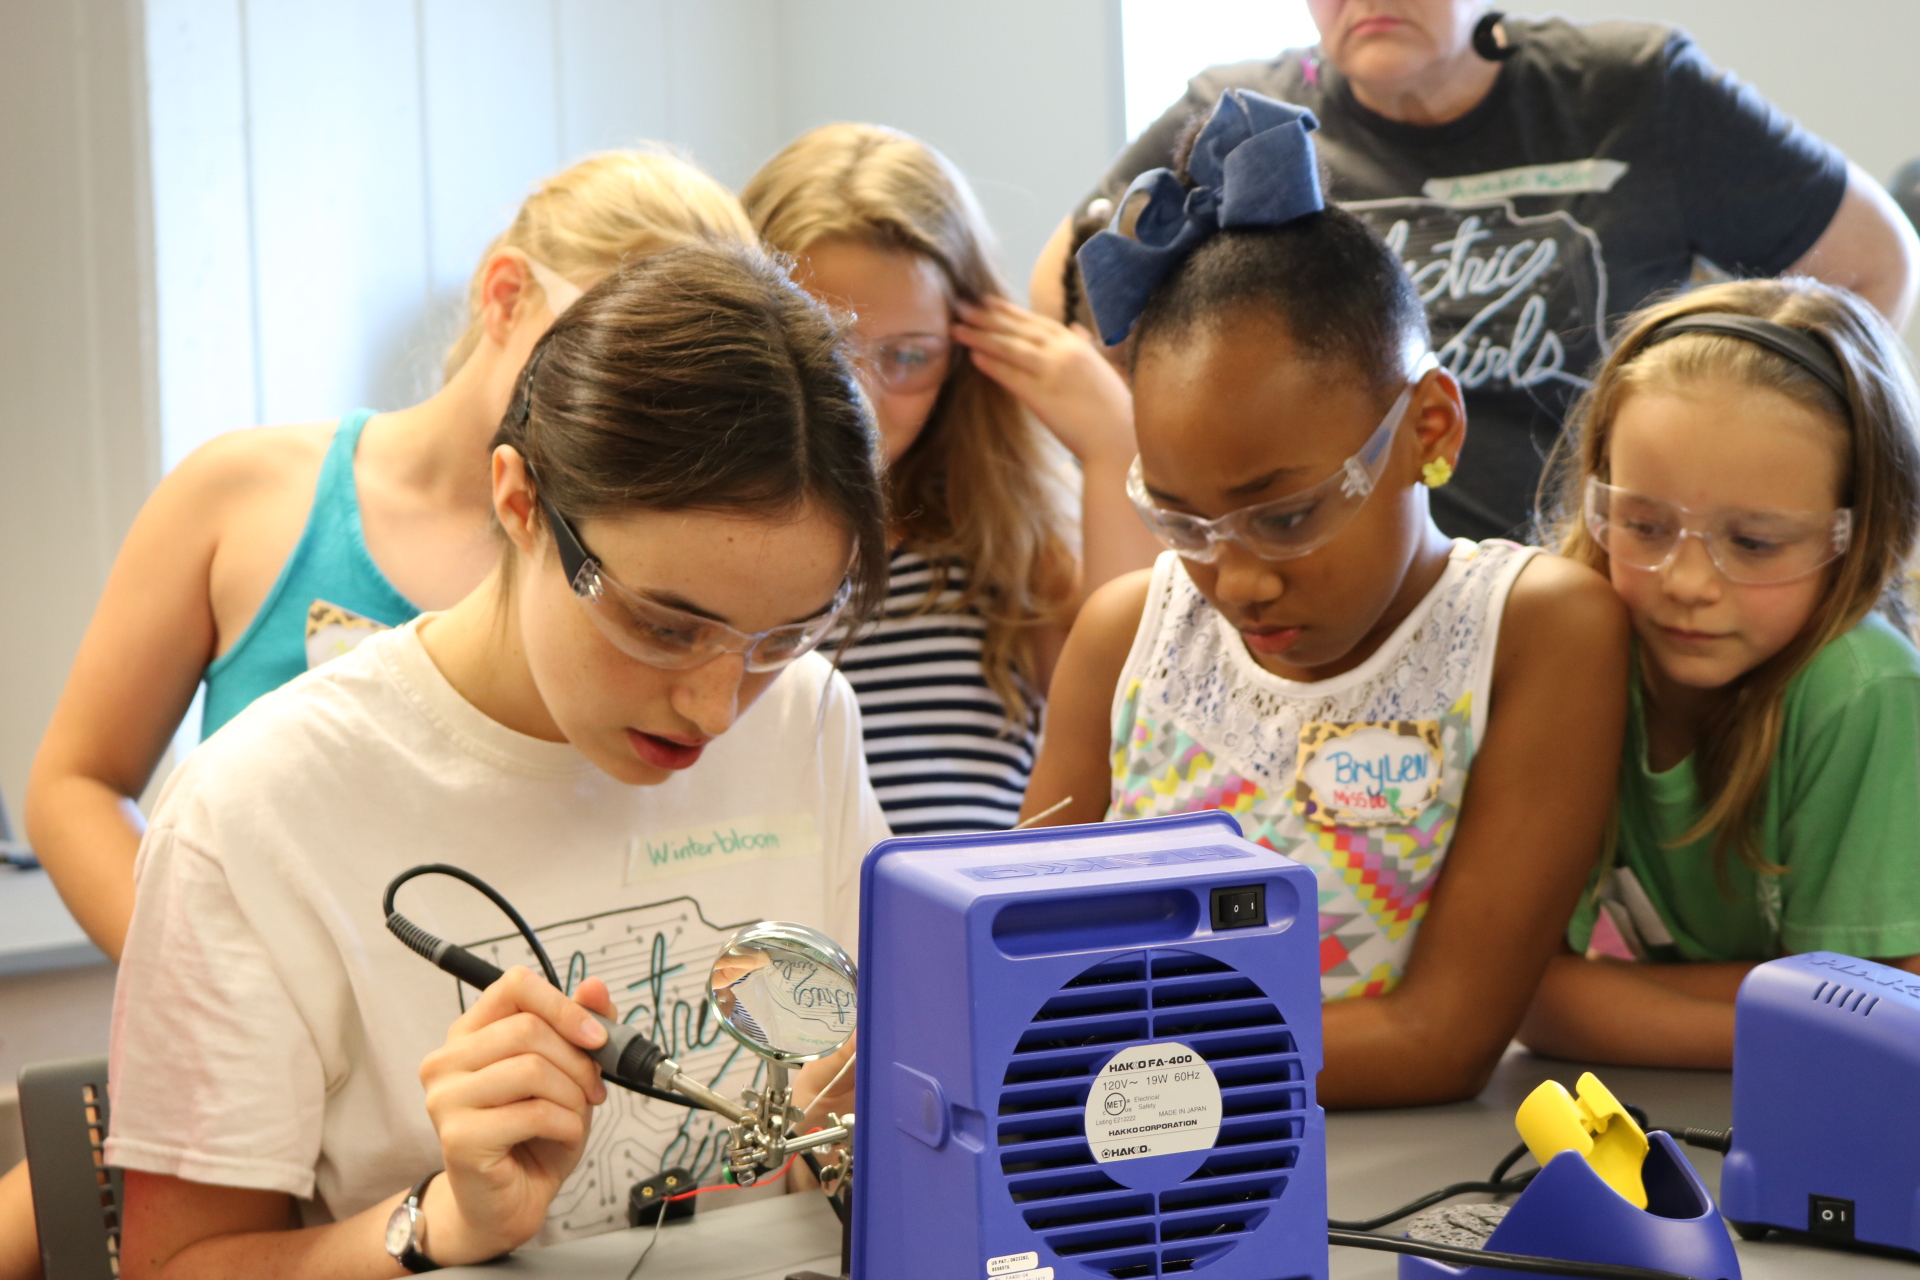 Through Electric Girls programming, girls develop code and other technology.